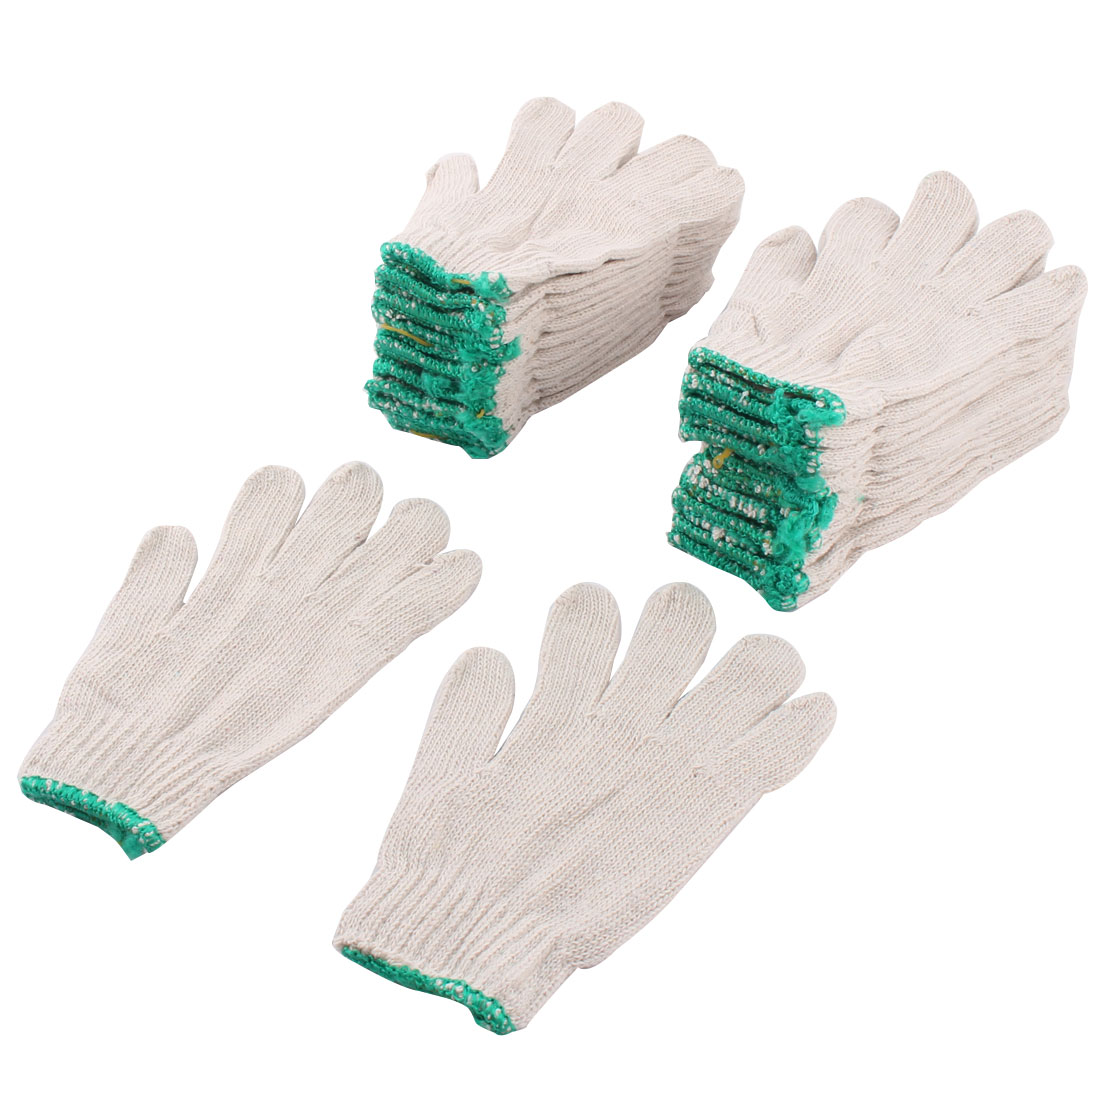 12 Pairs Factory Industry Protective Elastic Cuff Knitted Cotton Work Gloves